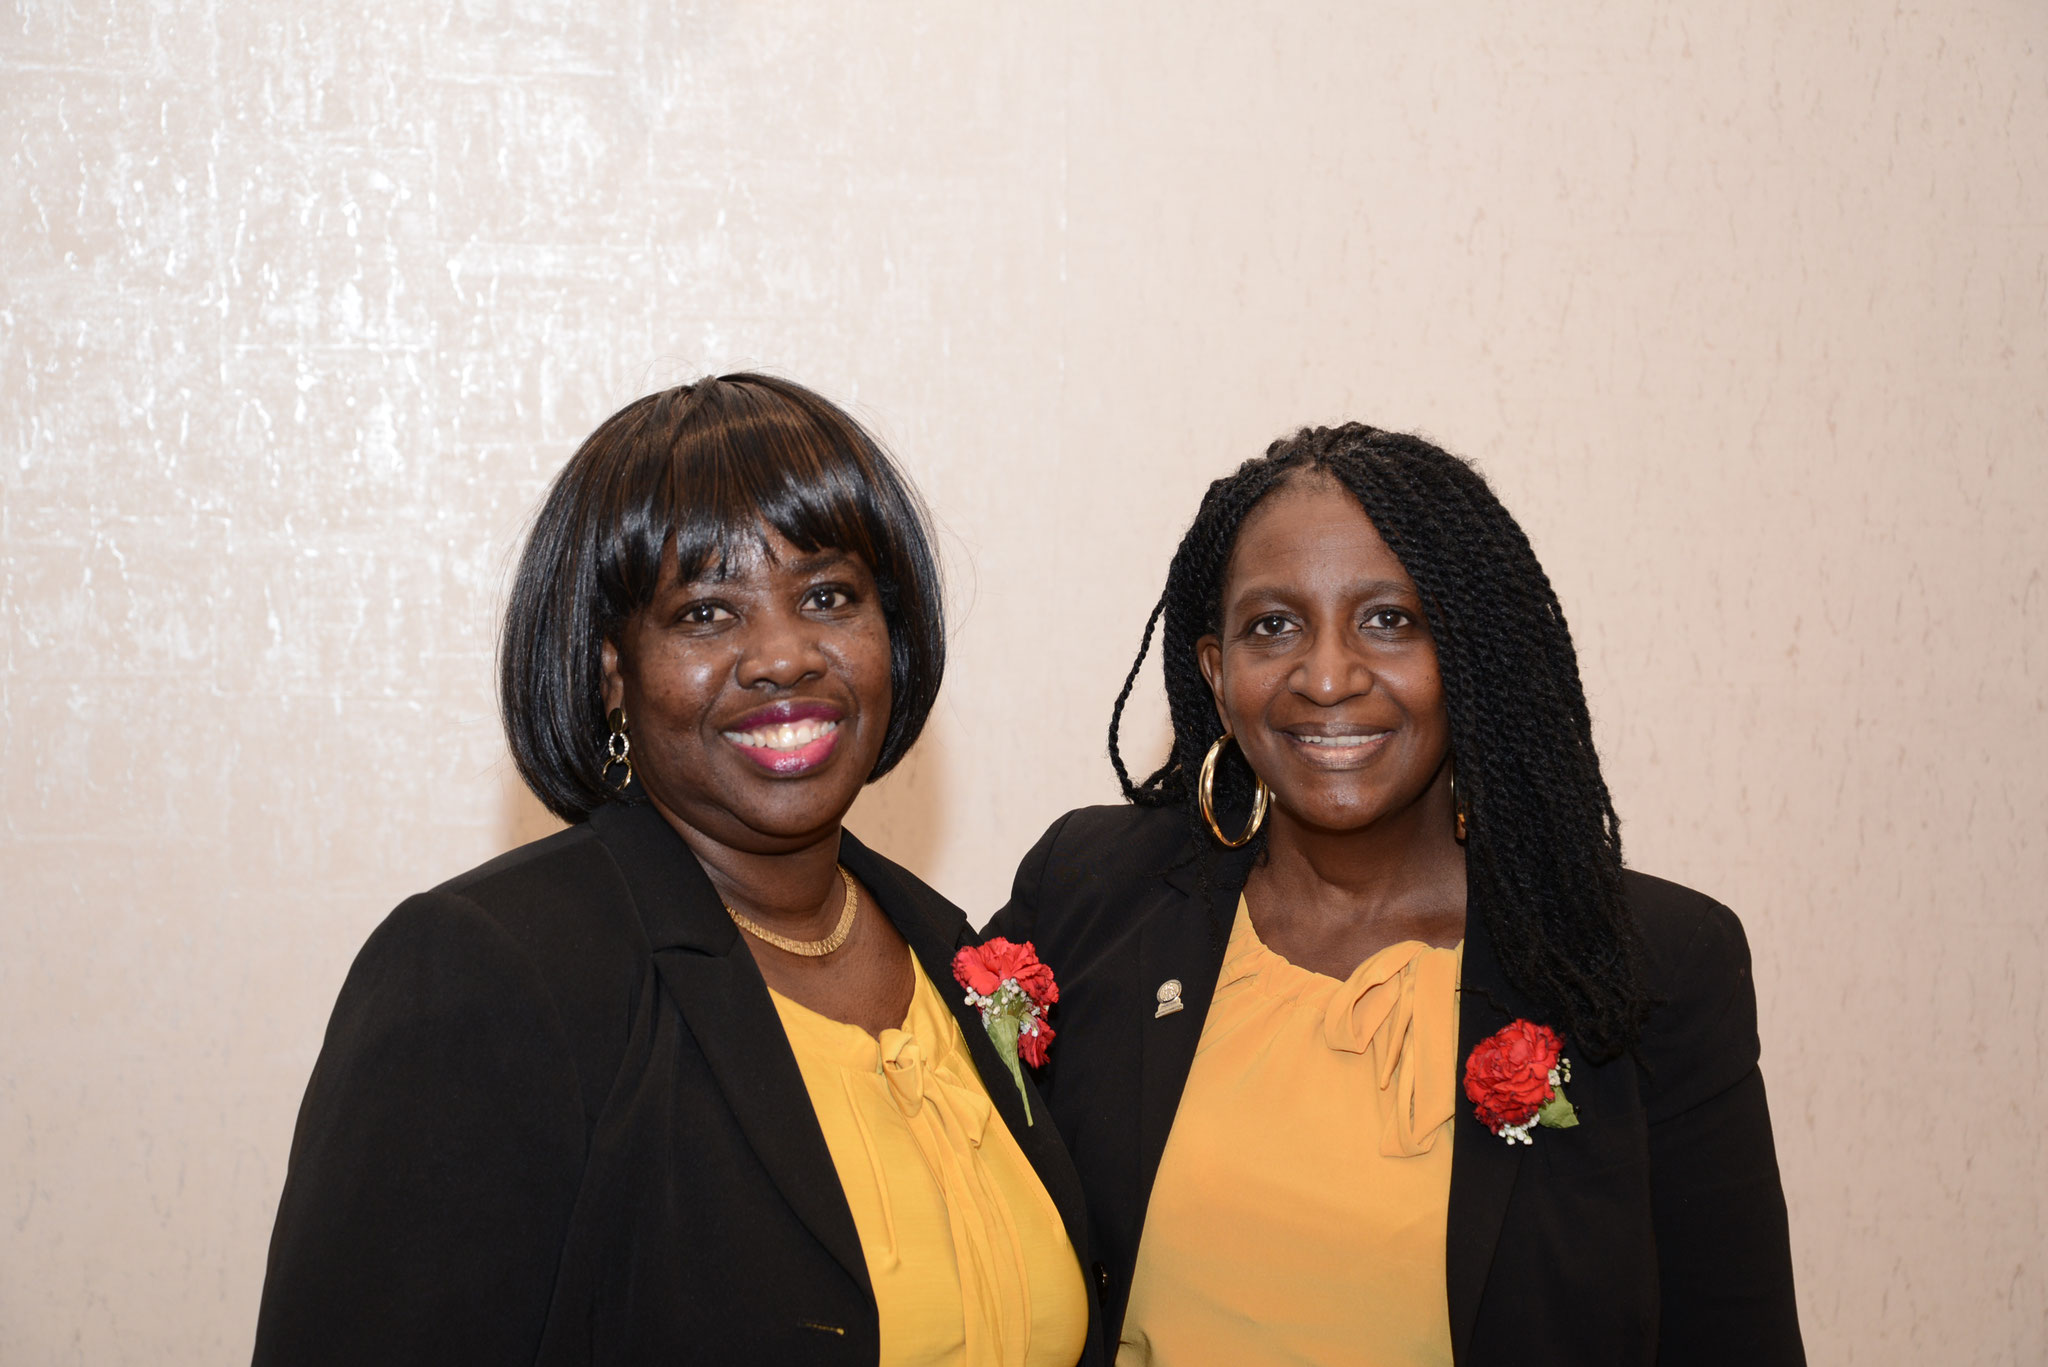 Club Asst YF Darlene Mack-Brown and Club Chaplin YF Dietra Harvey